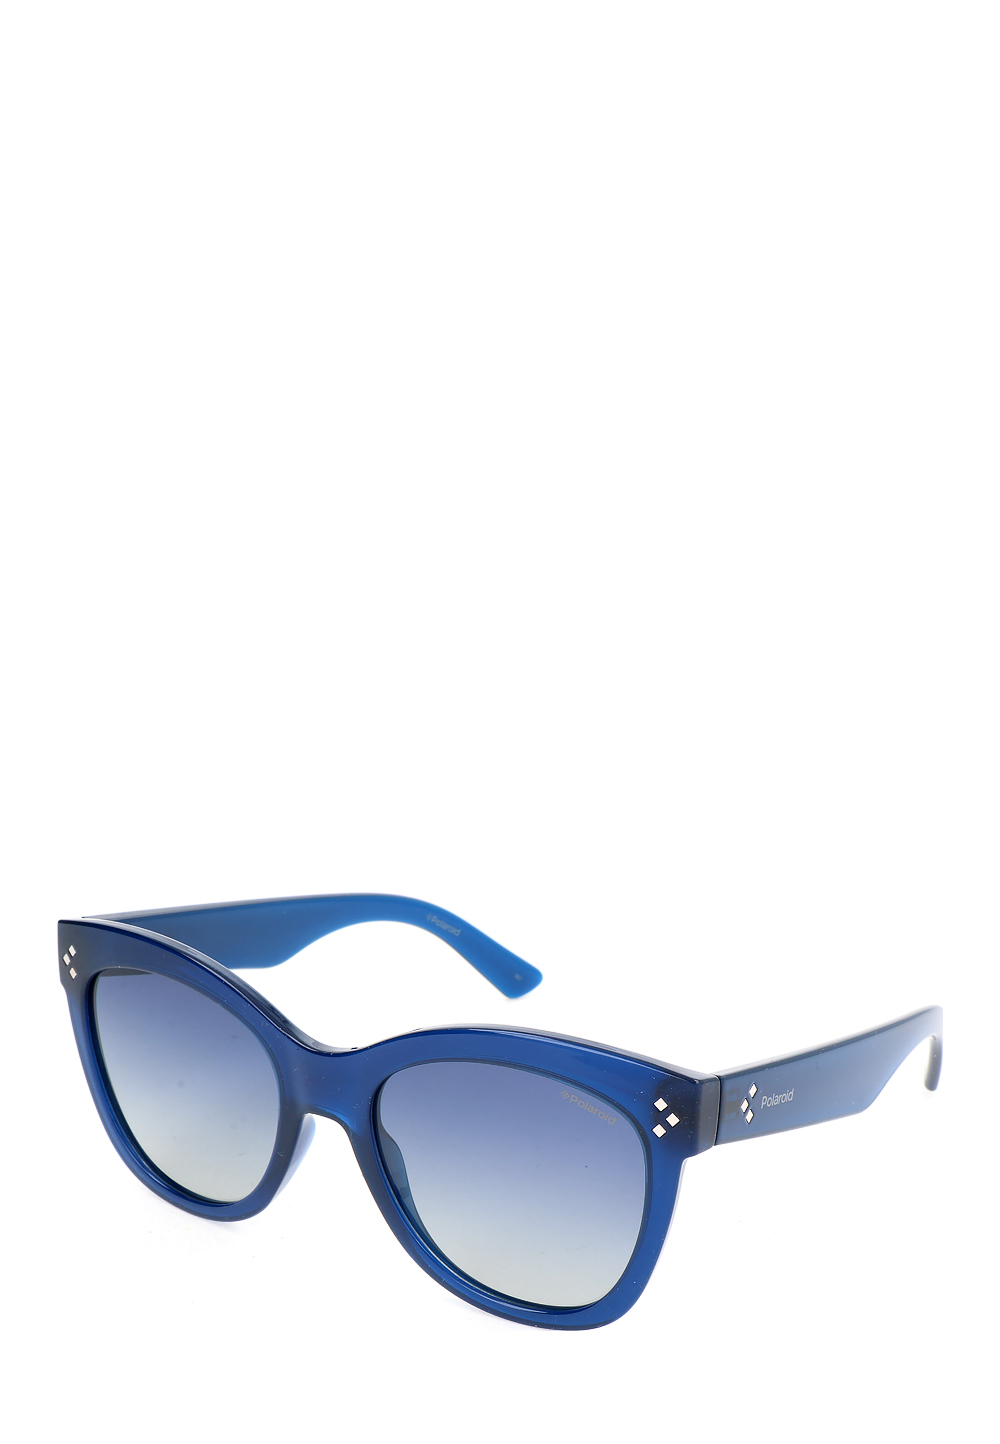 Sonnenbrille Pld4040/S, polarized, Uv400, blue blau